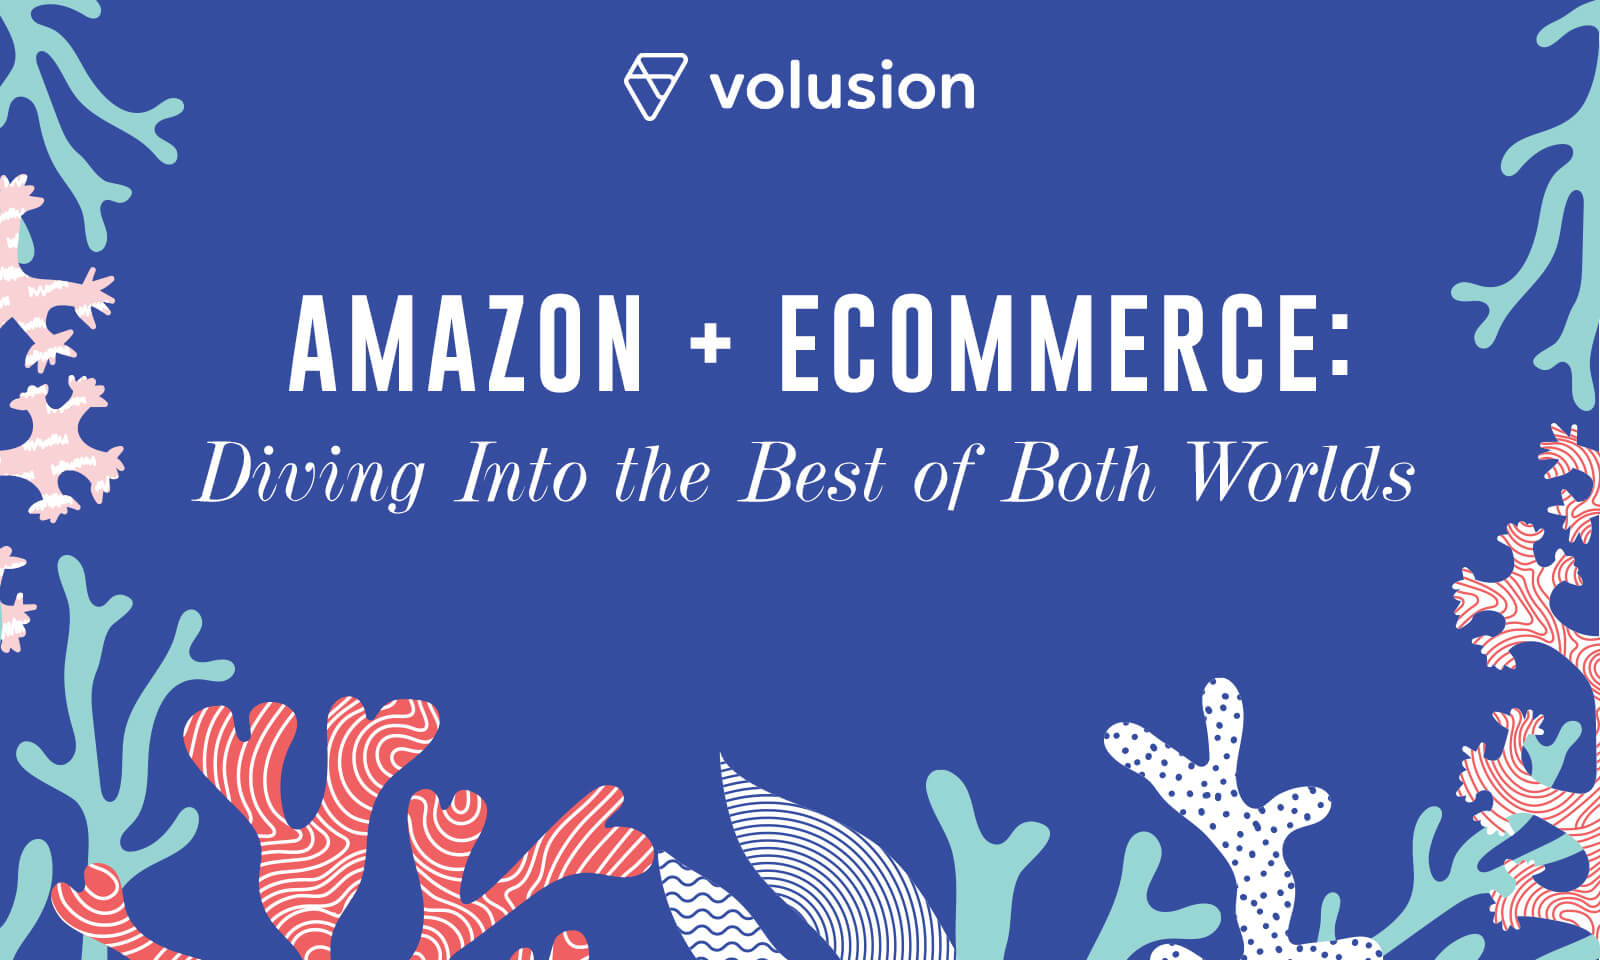 Webinar: Amazon + Ecommerce: Diving Into the Best of Both Worlds